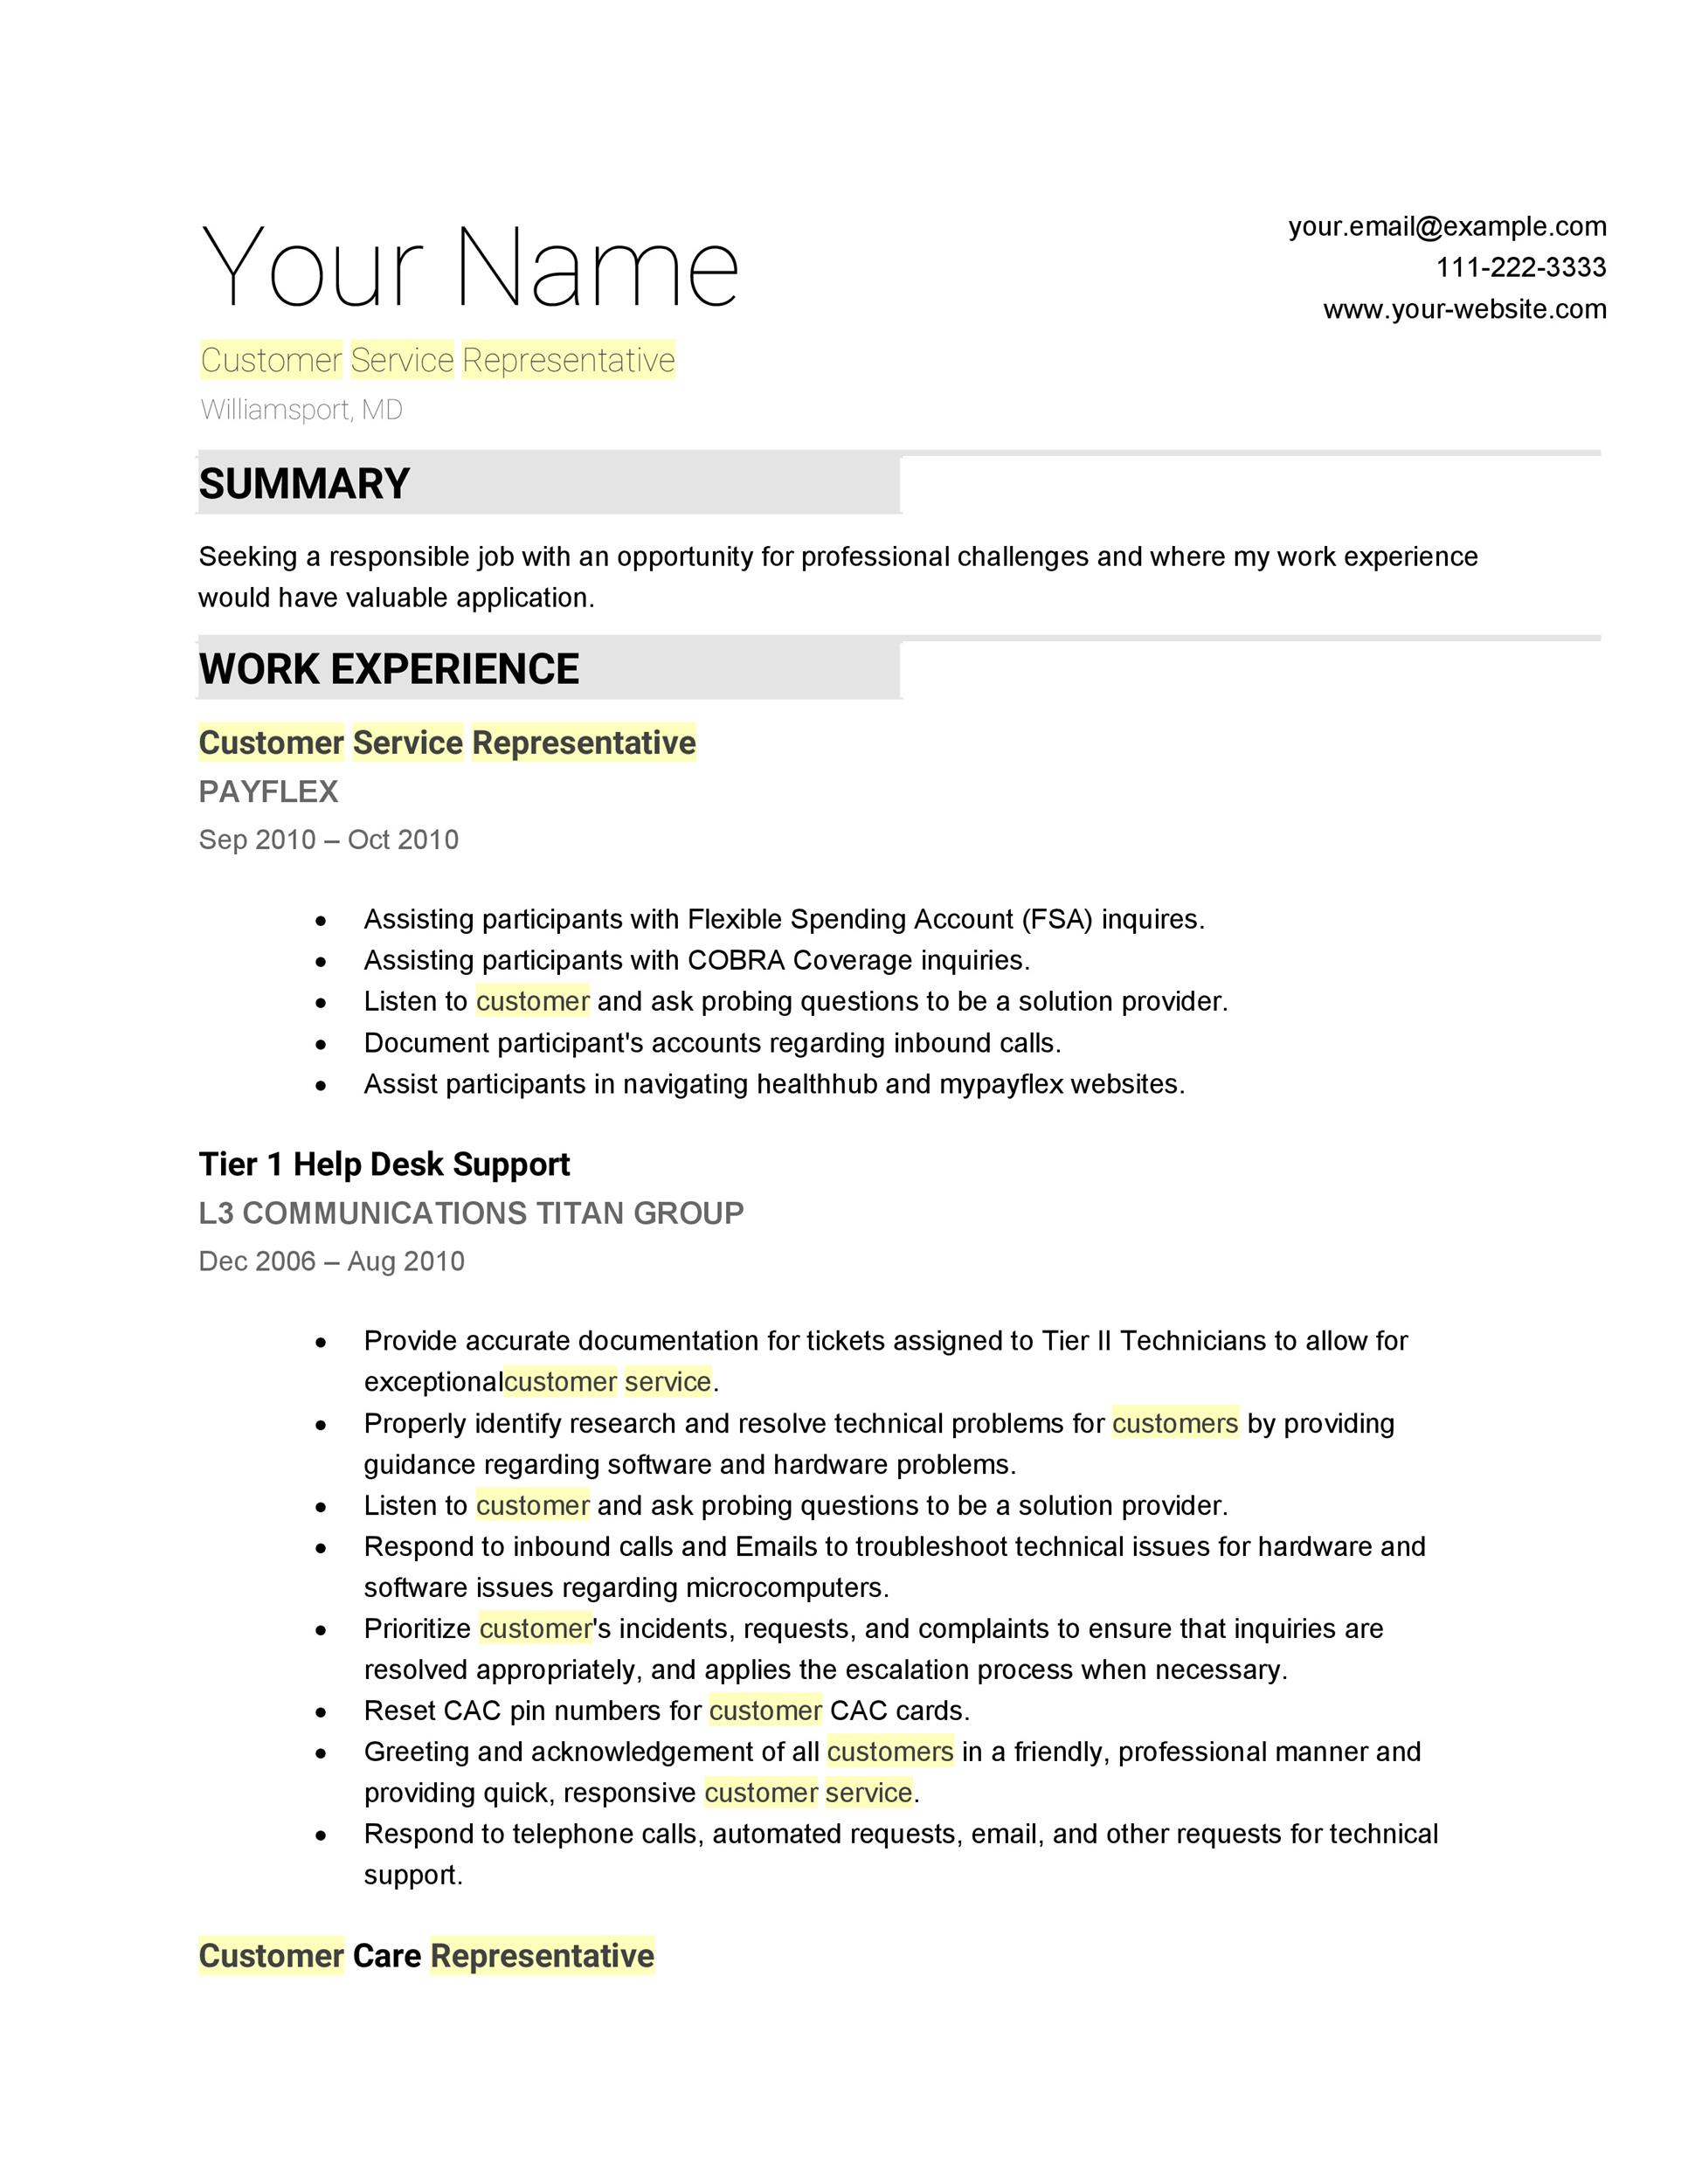 30 Customer Service Resume Examples Template Lab – Customer Service Resume